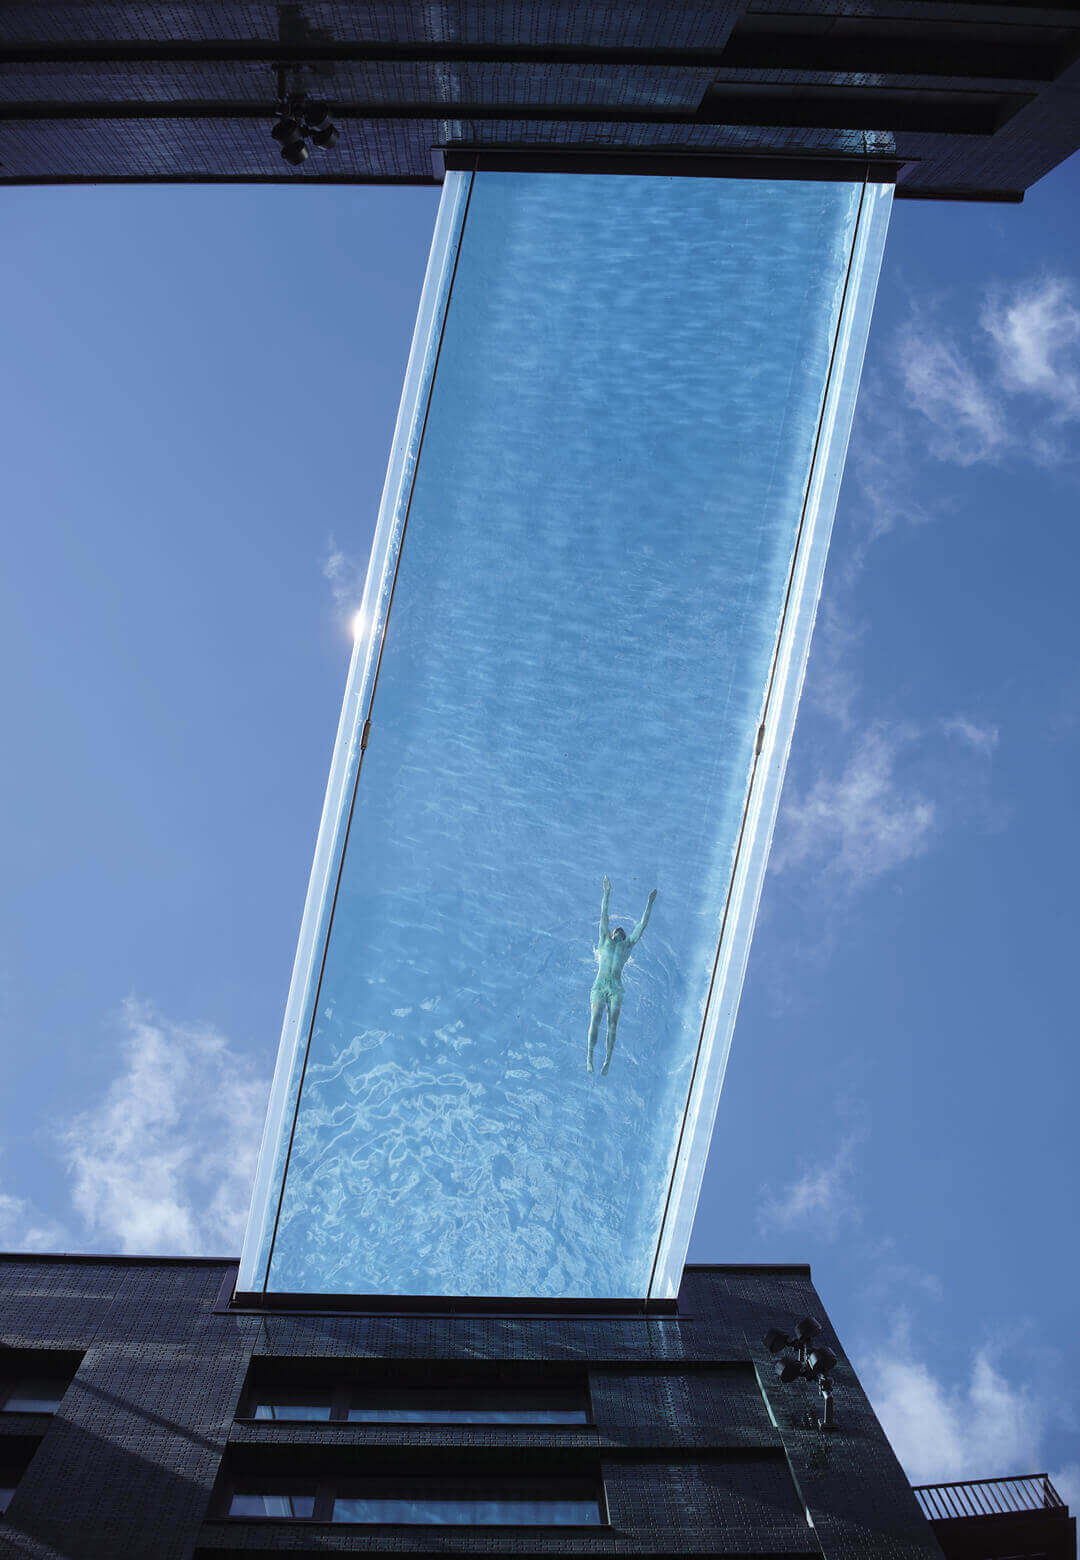 Sky Pool is a transparent acrylic swimming pool suspended ten storeys above ground in London's Embassy Gardens   Sky Pool by HAL Architects and Eckersley O'Callaghan Engineers   STIRworld